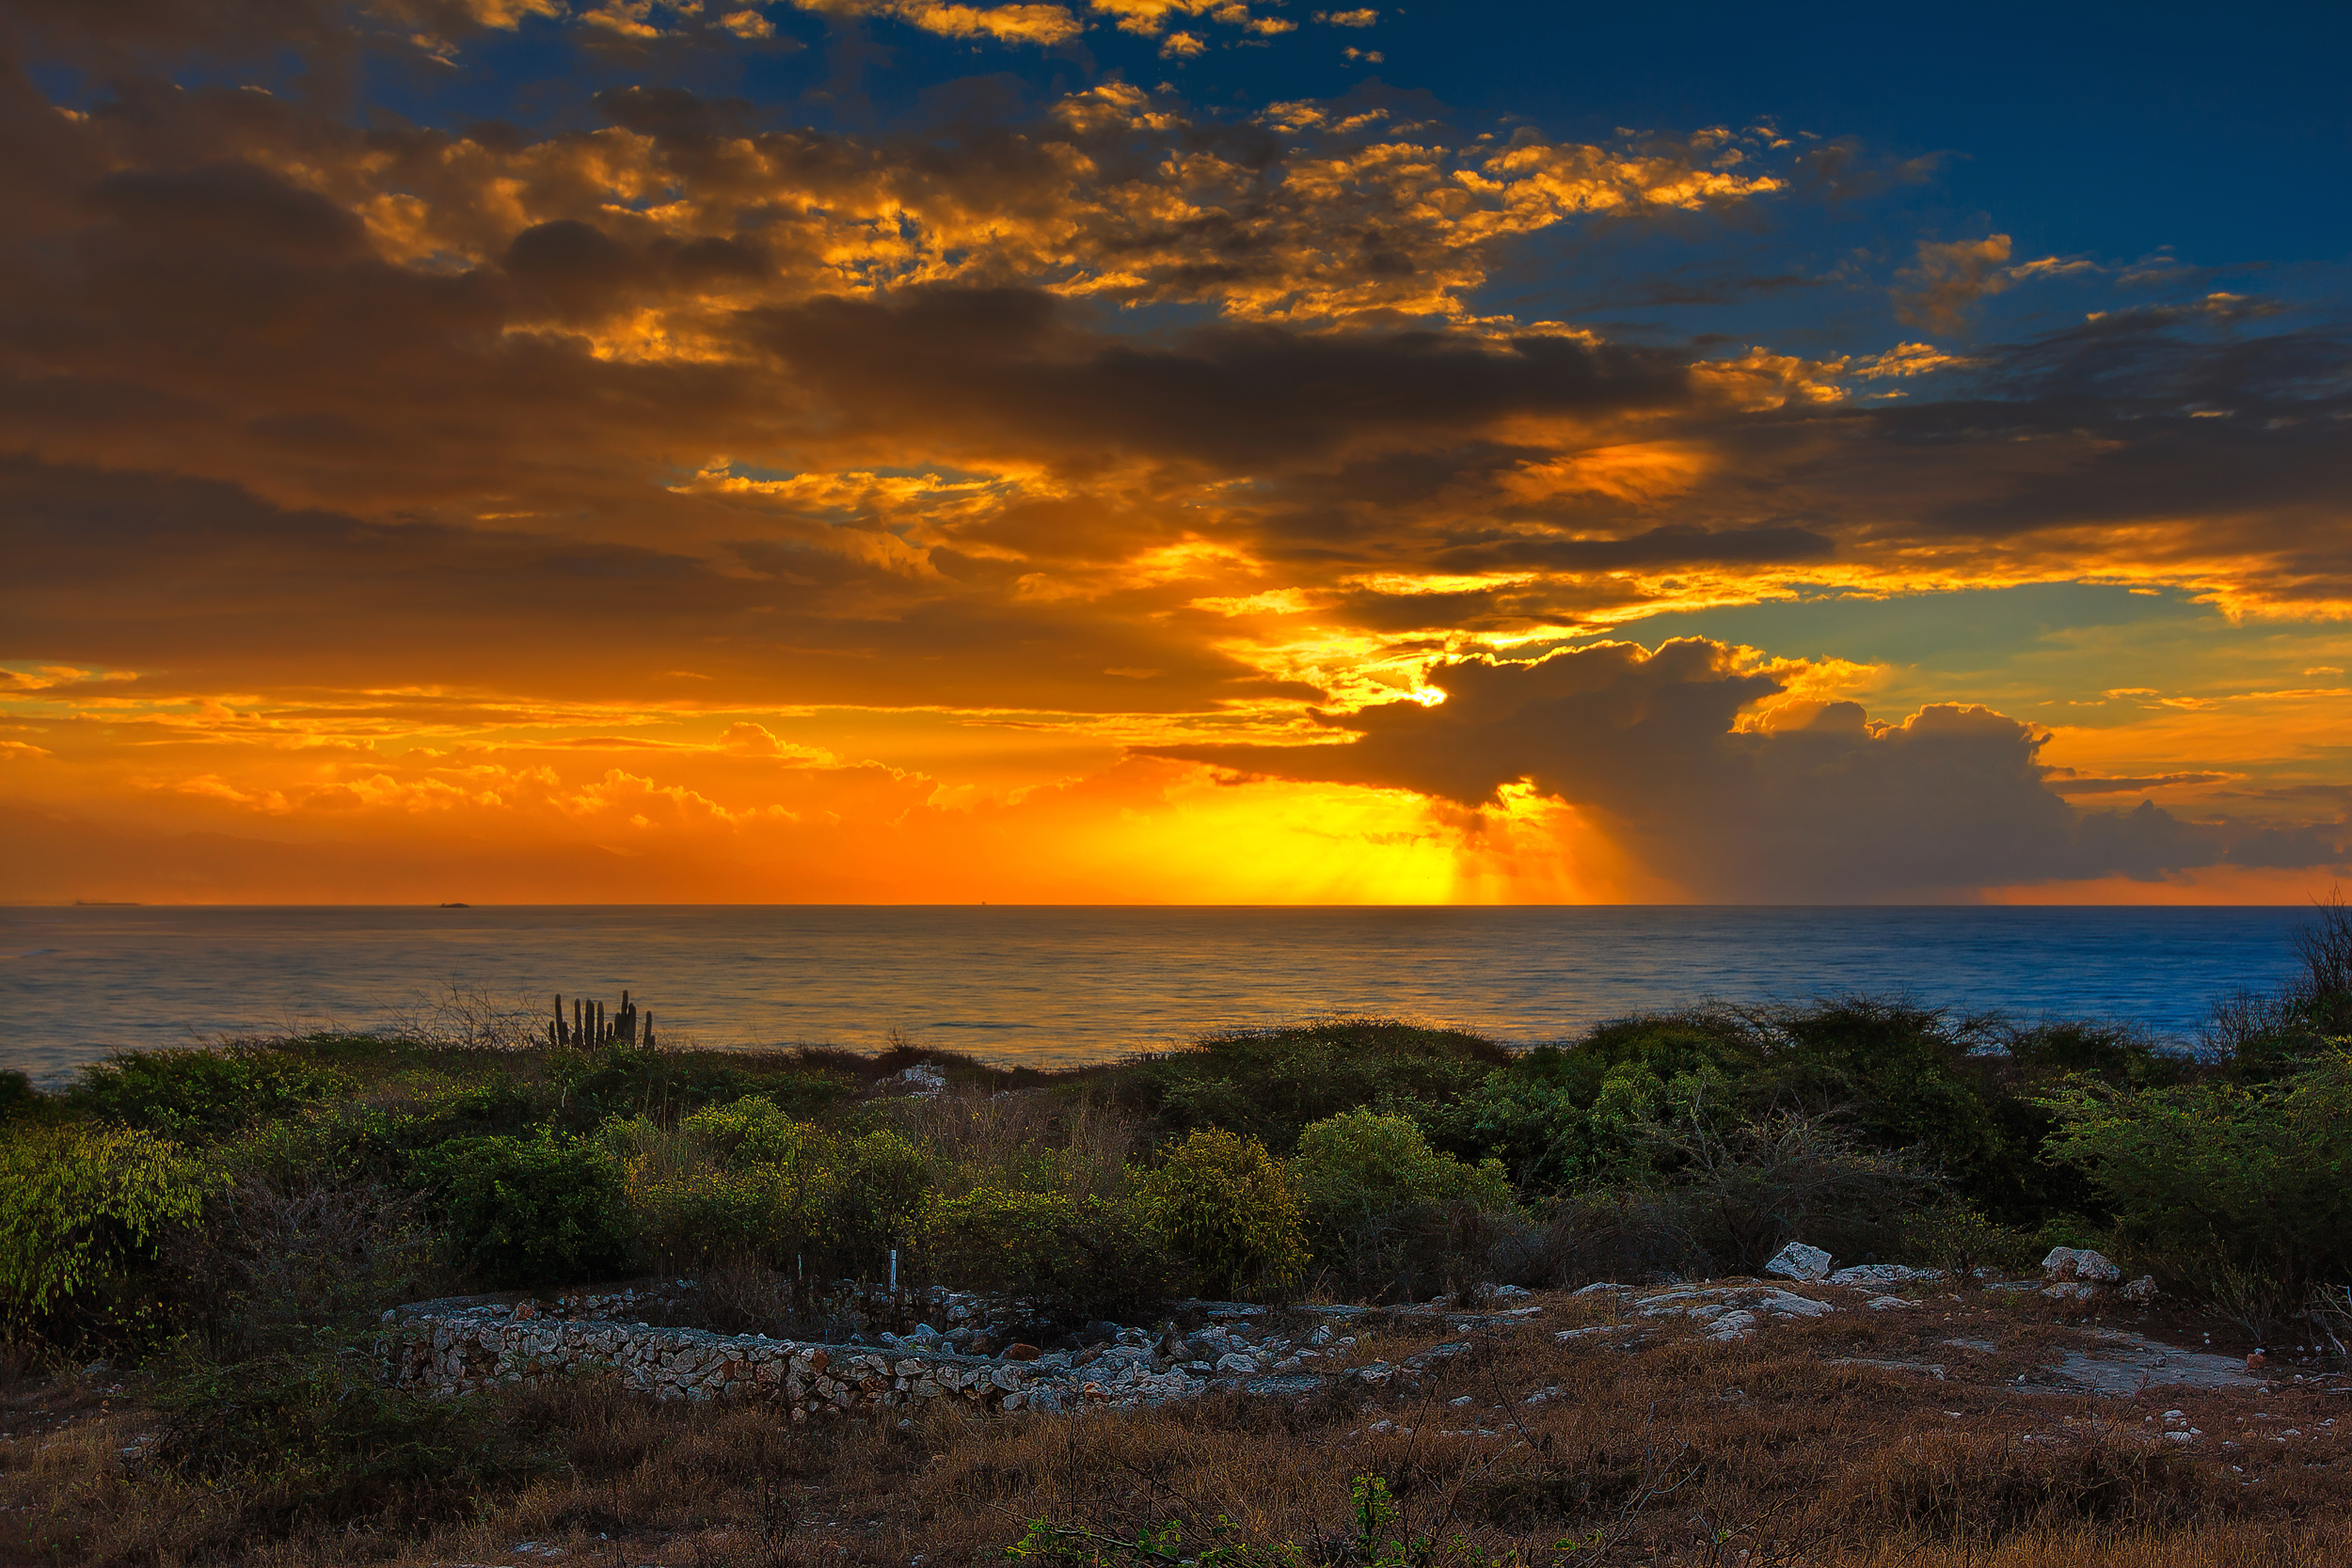 Early morning view from Hellshire in St Catherine, Jamaica.